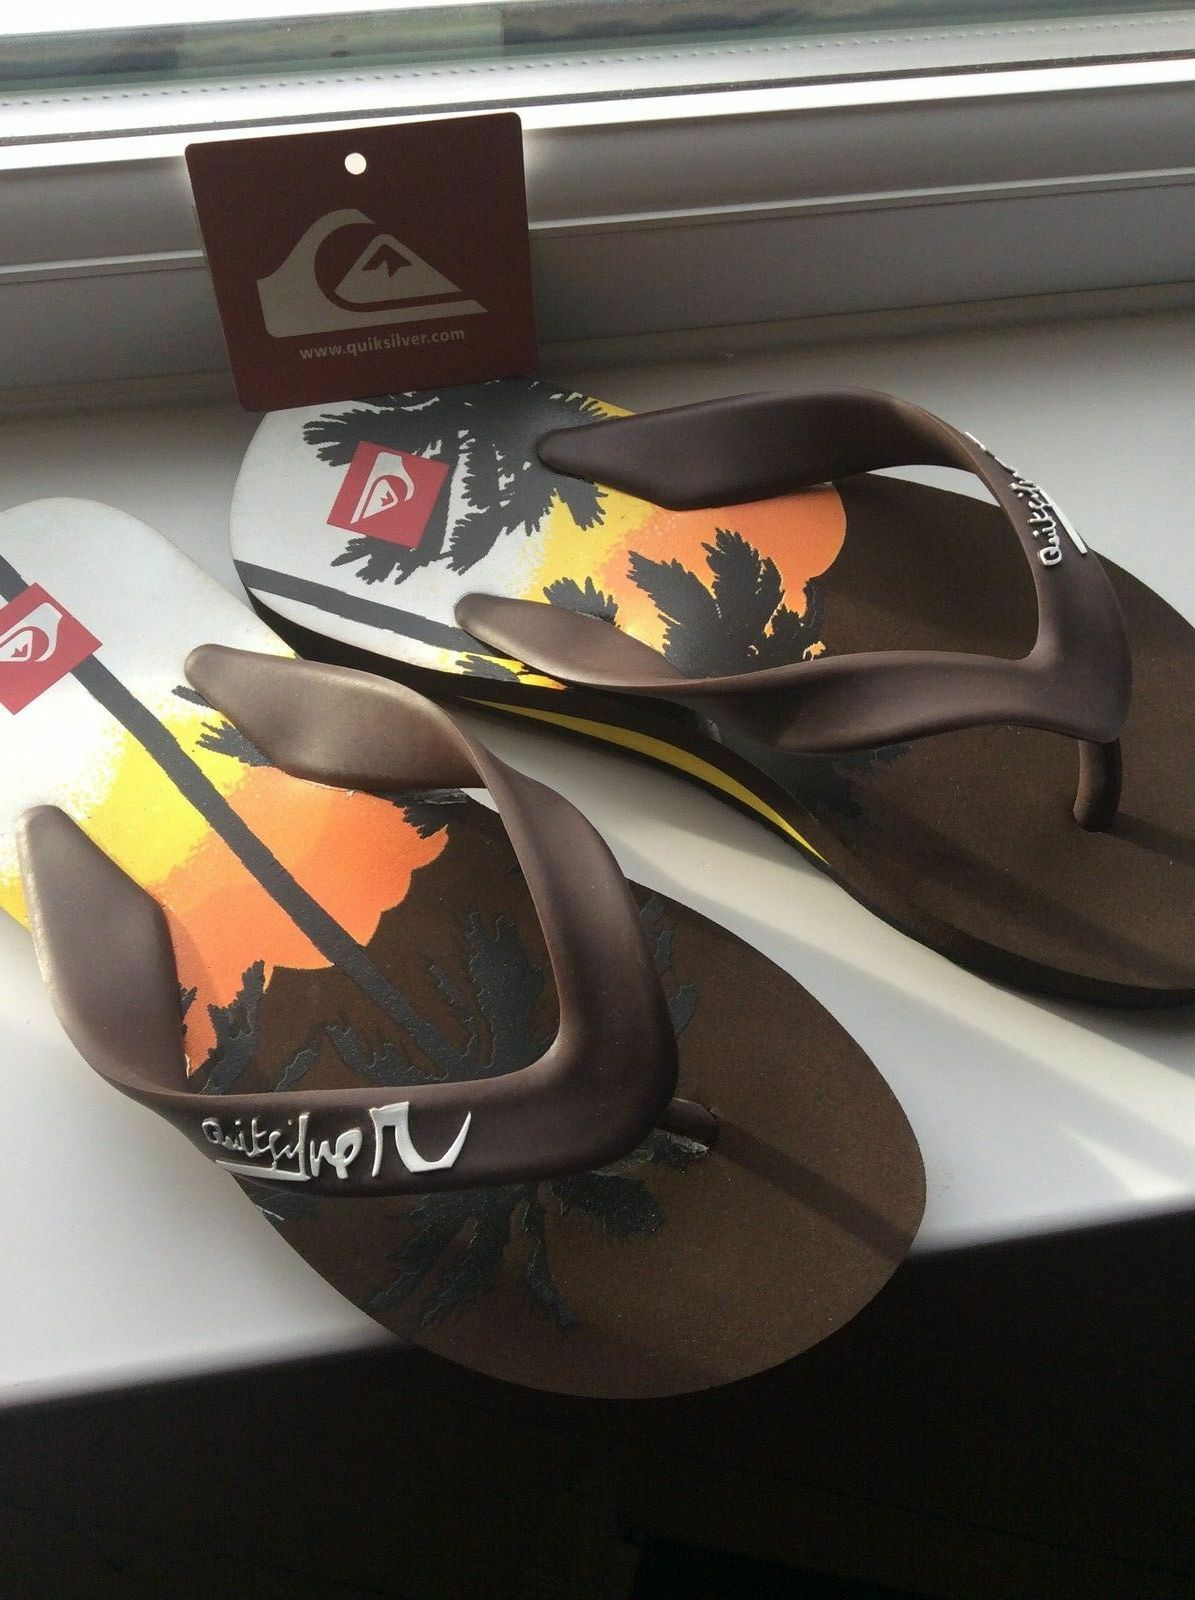 Quiksilver Sandals Little Palmtree Flip Flops Sandals Quiksilver Beach Toe Post Brown Orange Yellow db9def